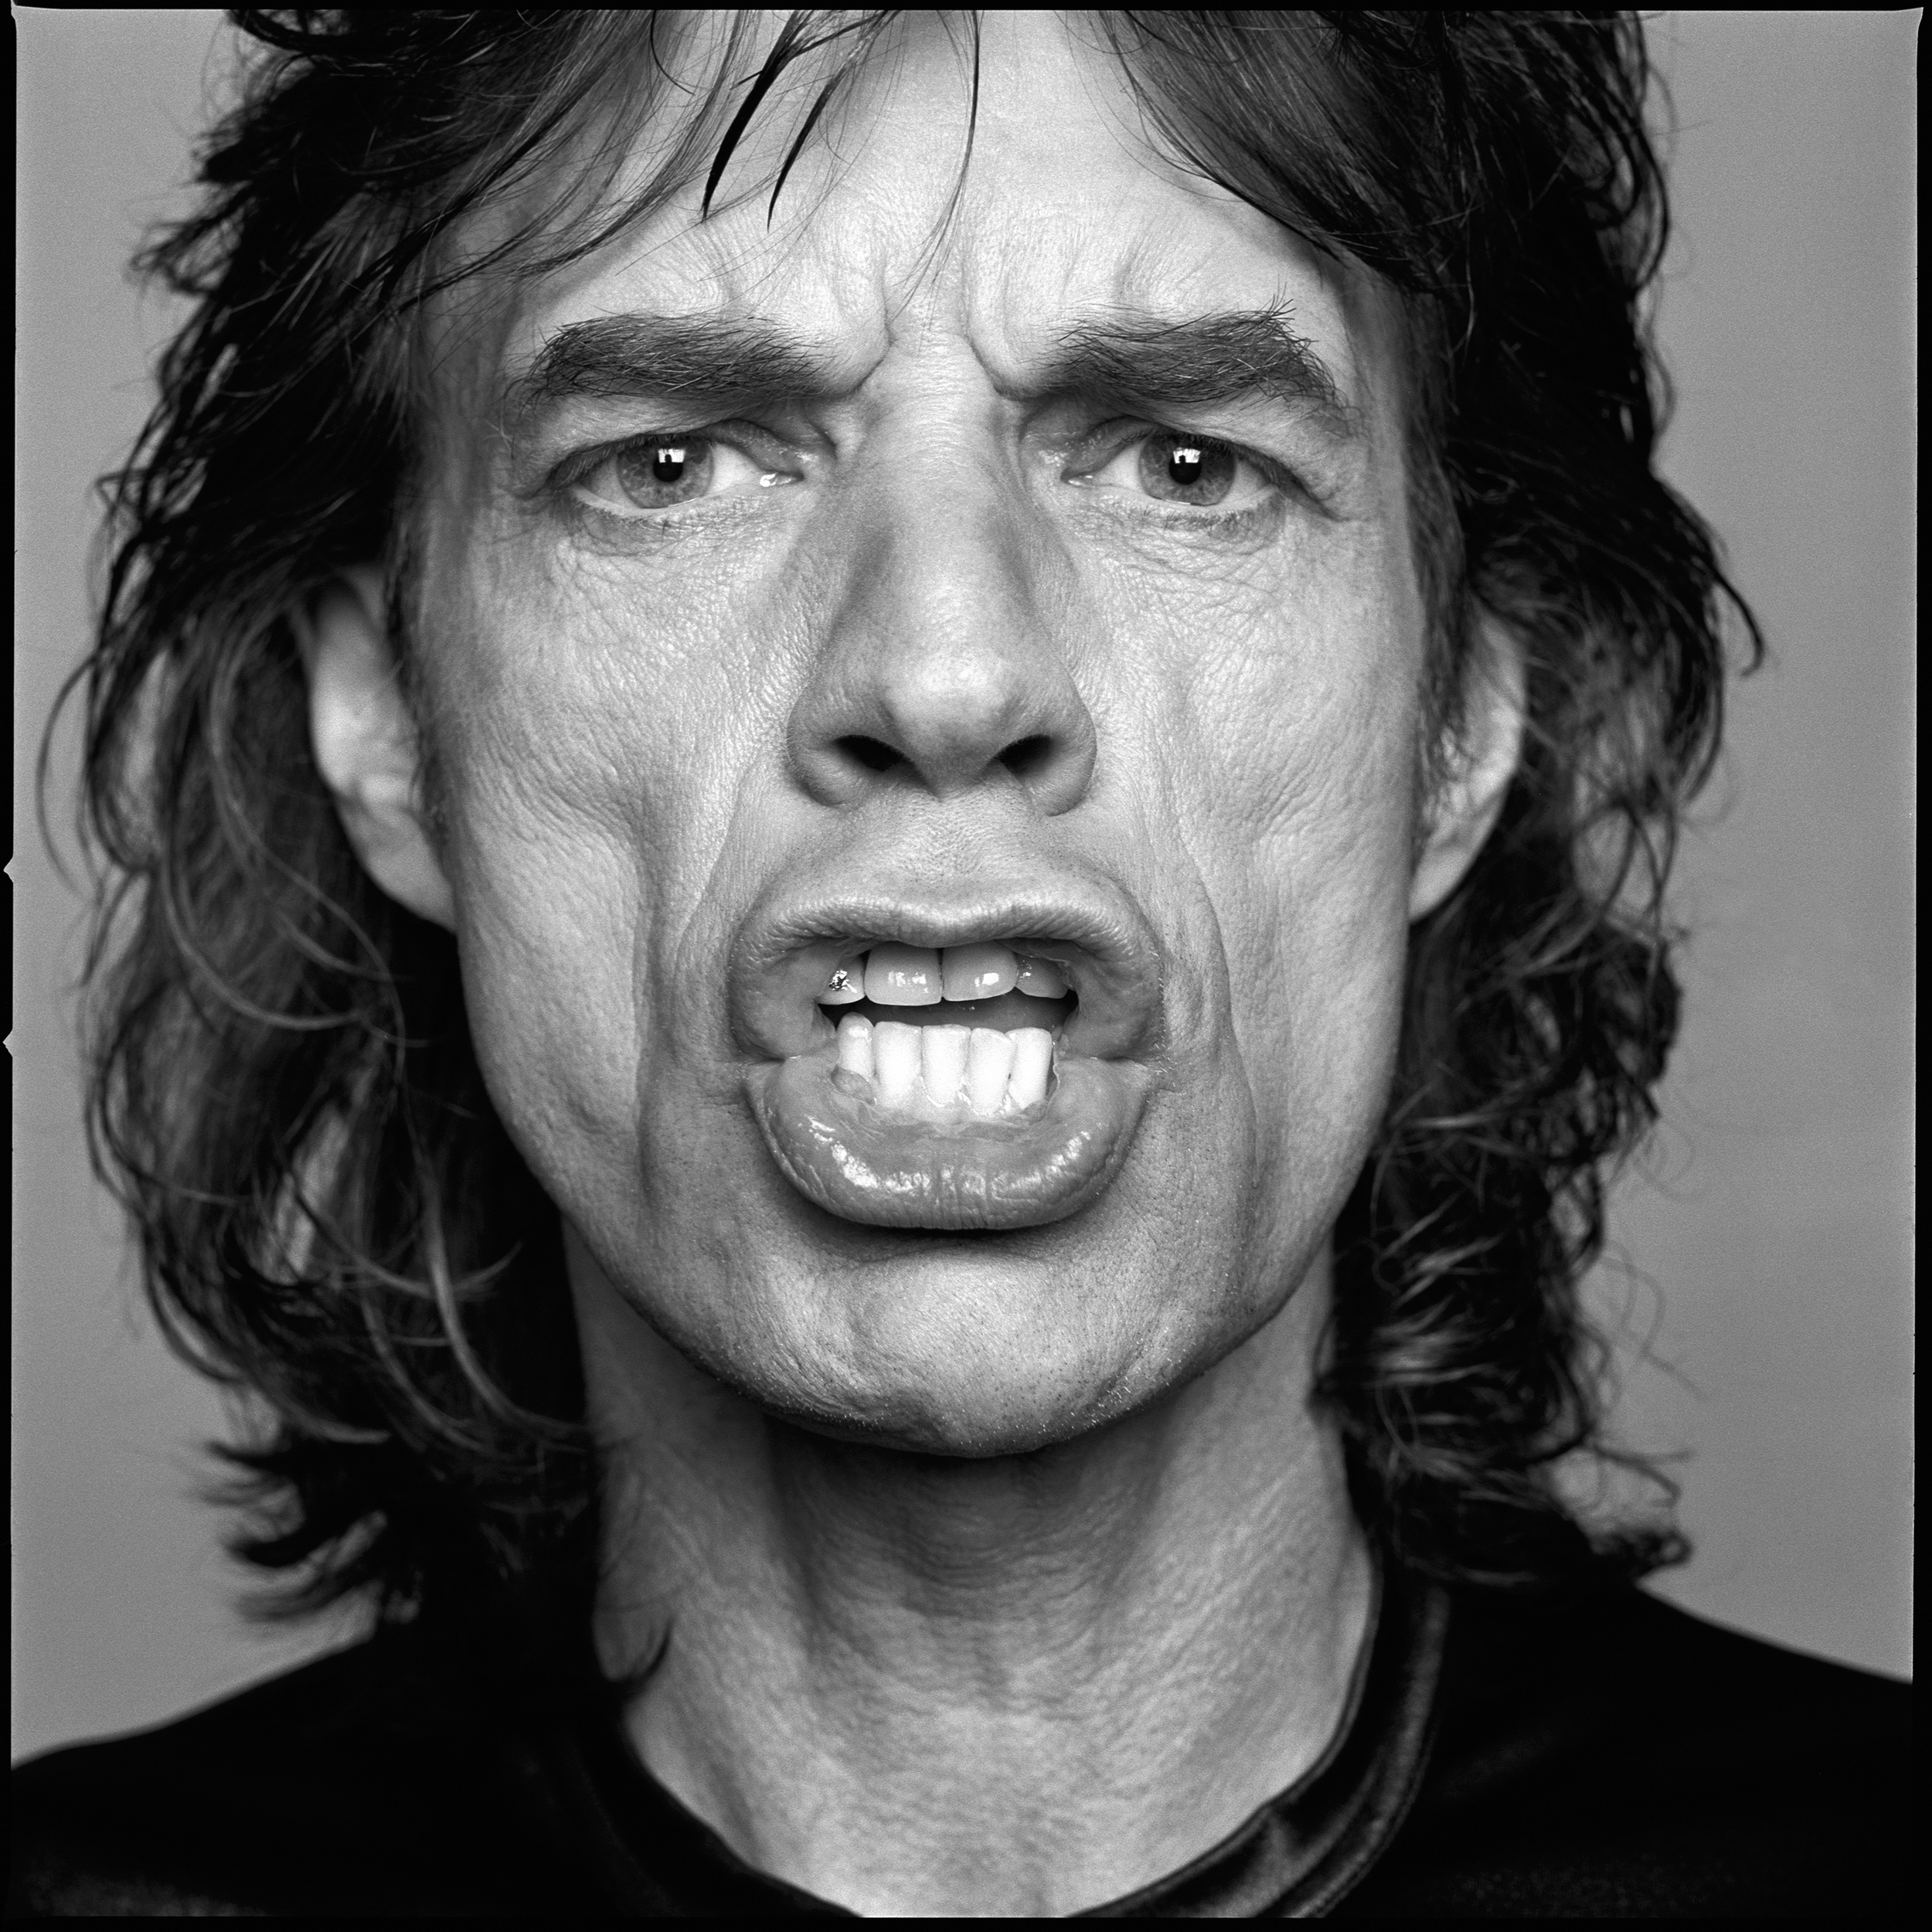 Mick Jagger photographed for an Esquire cover story on Mick's 50th Birthday by Patrik Andersson in his TriBeCa studio 1992